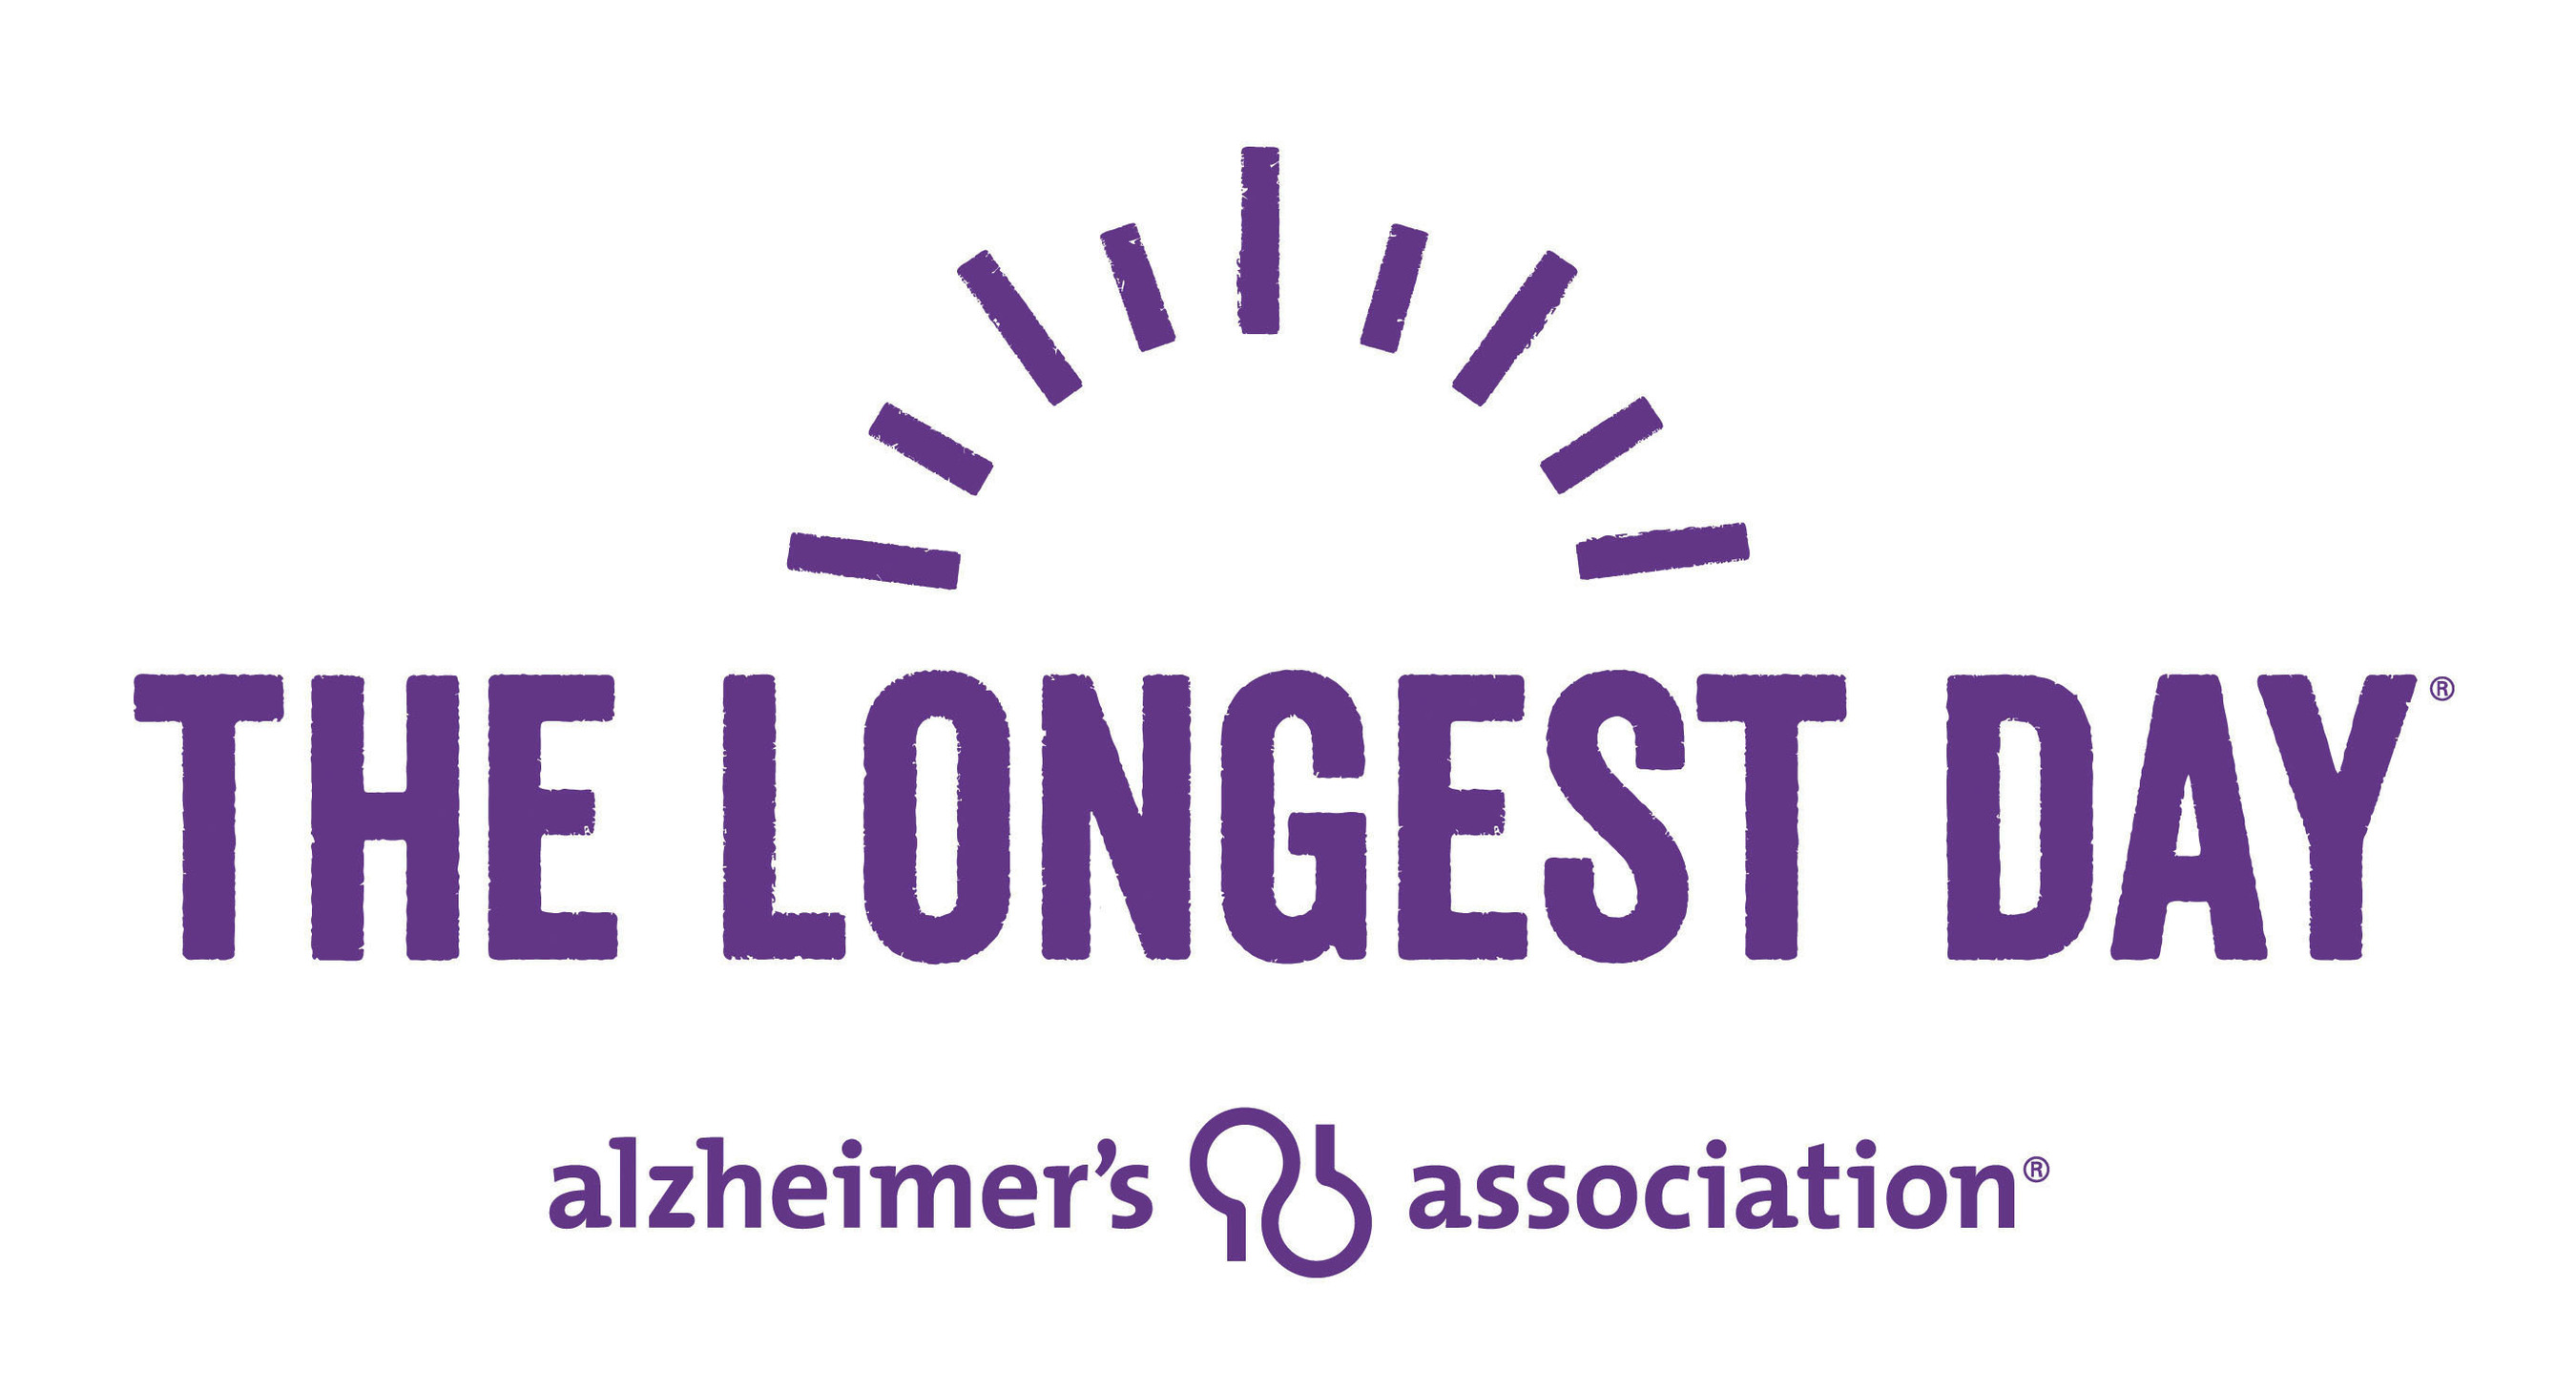 df8305bdc6f Alzheimer's Association Event, The Longest Day®, Honors Those Living ...